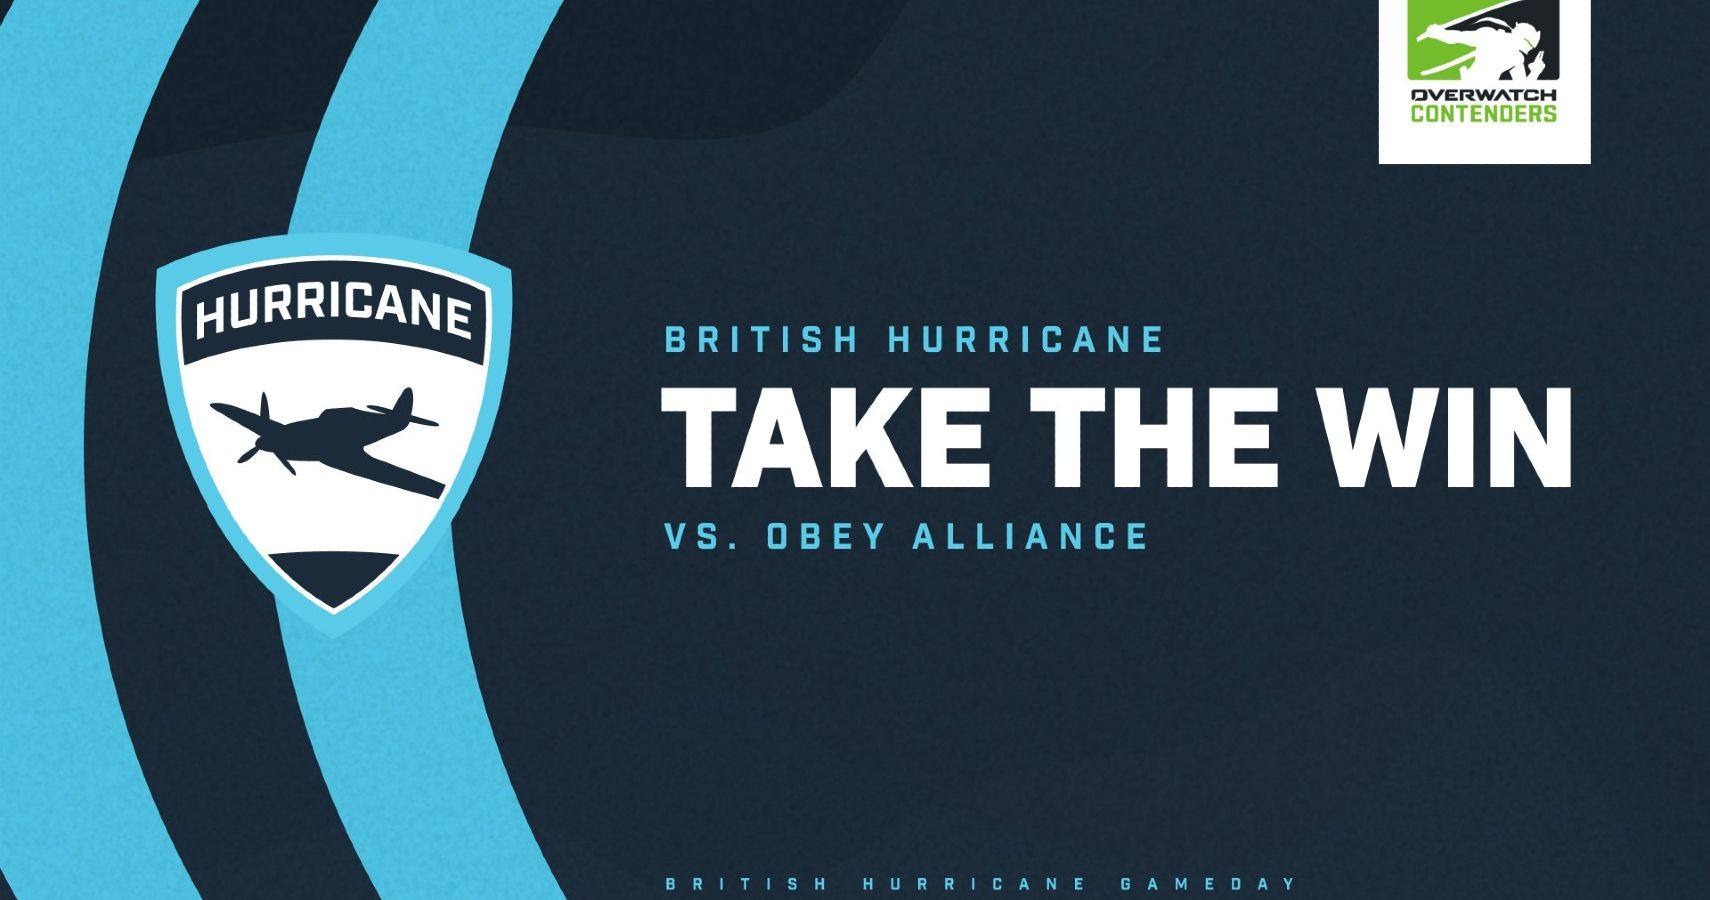 British Hurricane Dominates EU Overwatch Contenders October Tournament